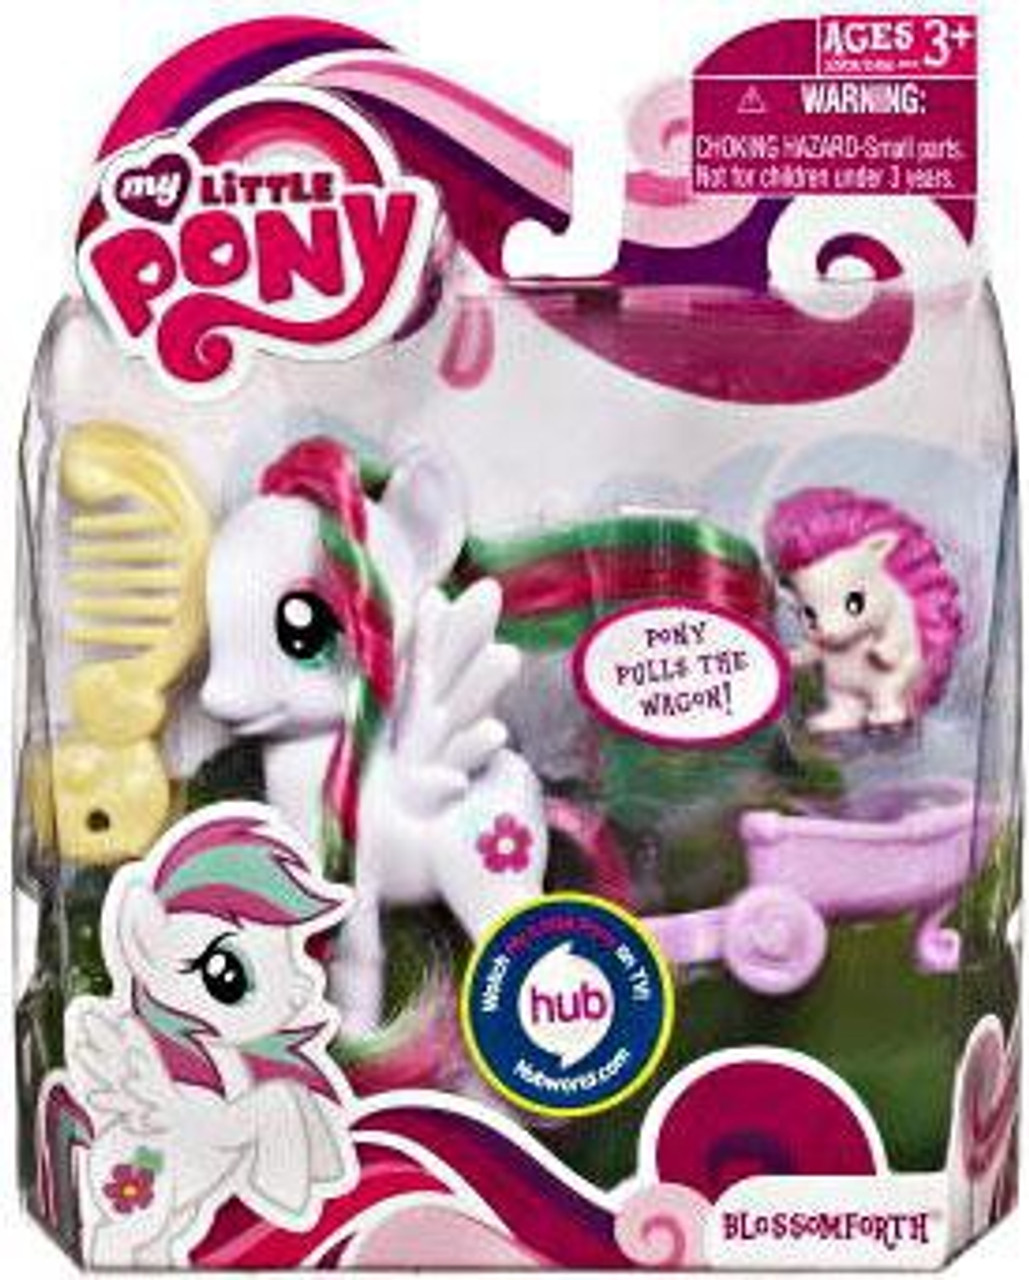 My Little Pony Basic Figures Blossomforth Figure [With Animal Friend]